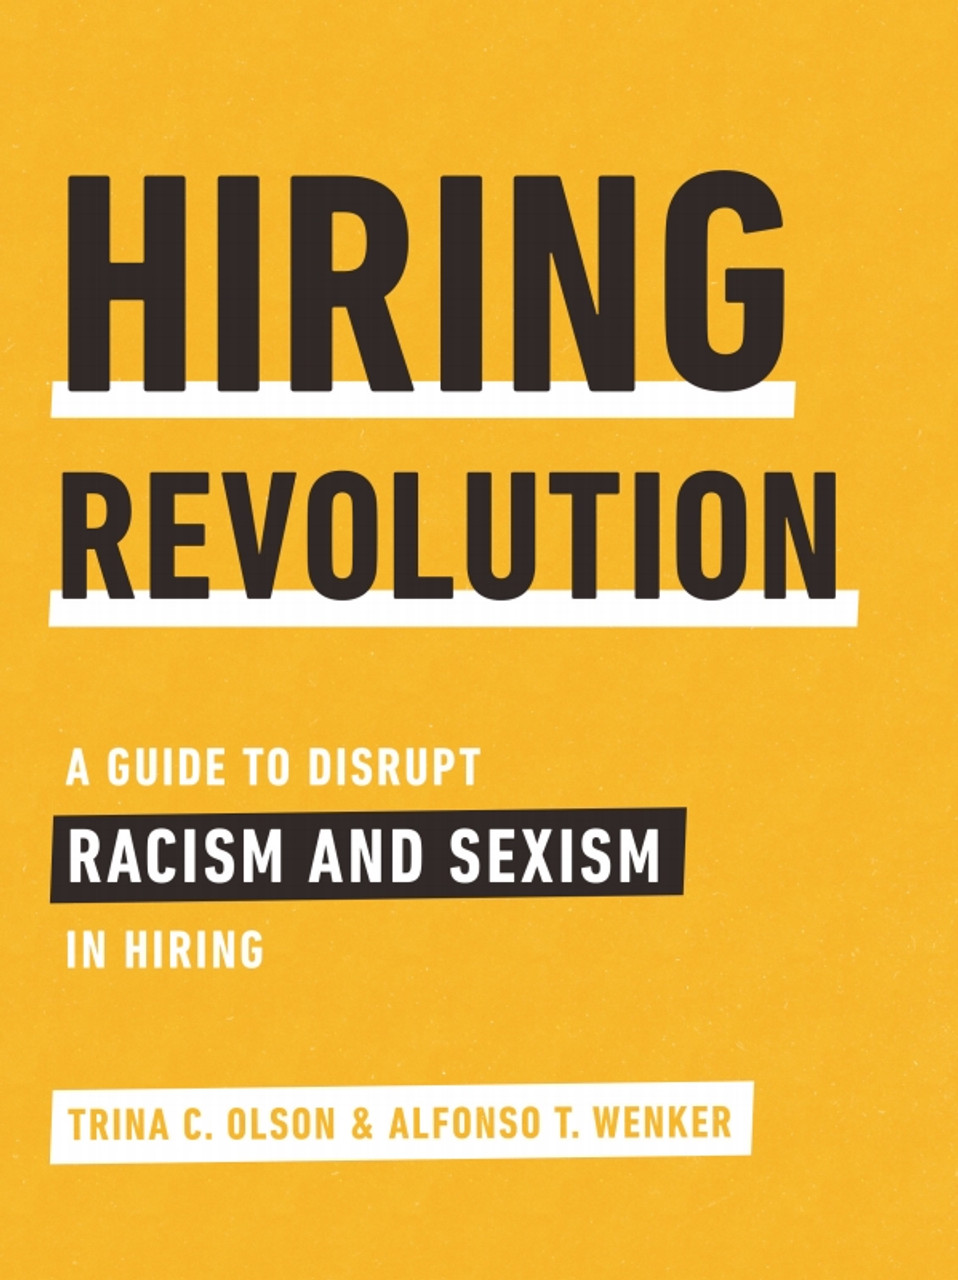 Hiring Revolution: A Guide to Disrupt Racism and Sexism in Hiring